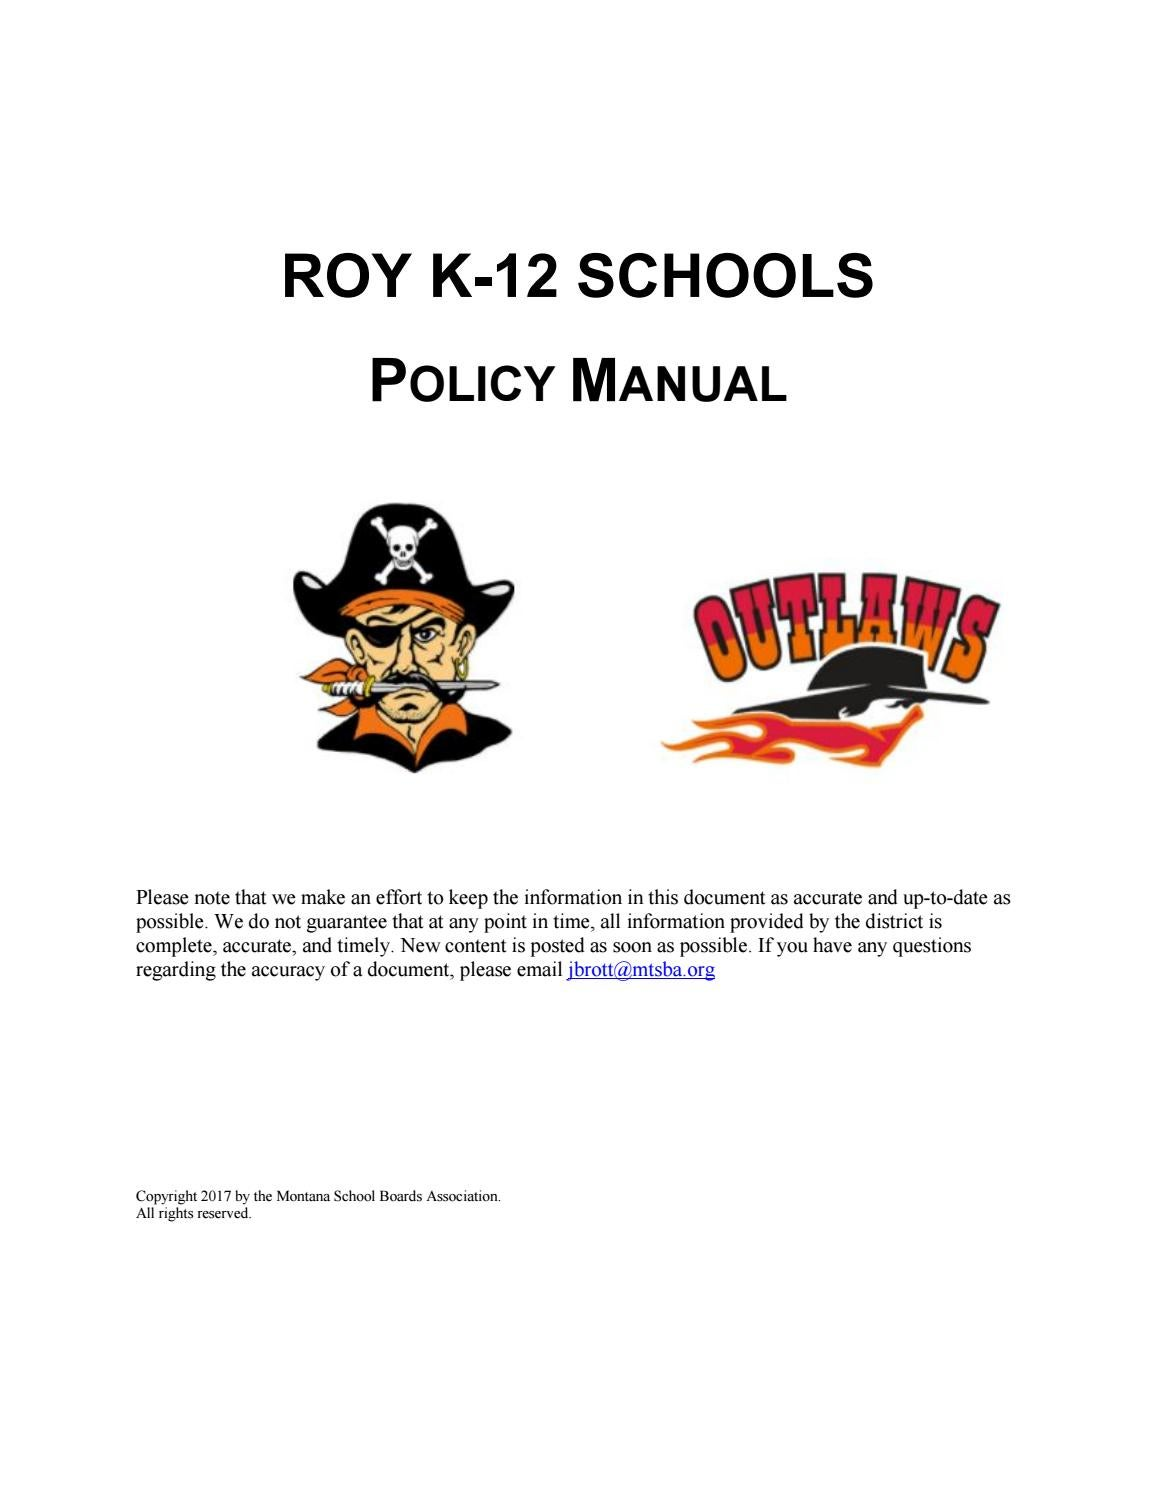 Roy K 12 Schools Policy Manual By Montana School Boards Association Example State Diagram Courseoffering Issuu